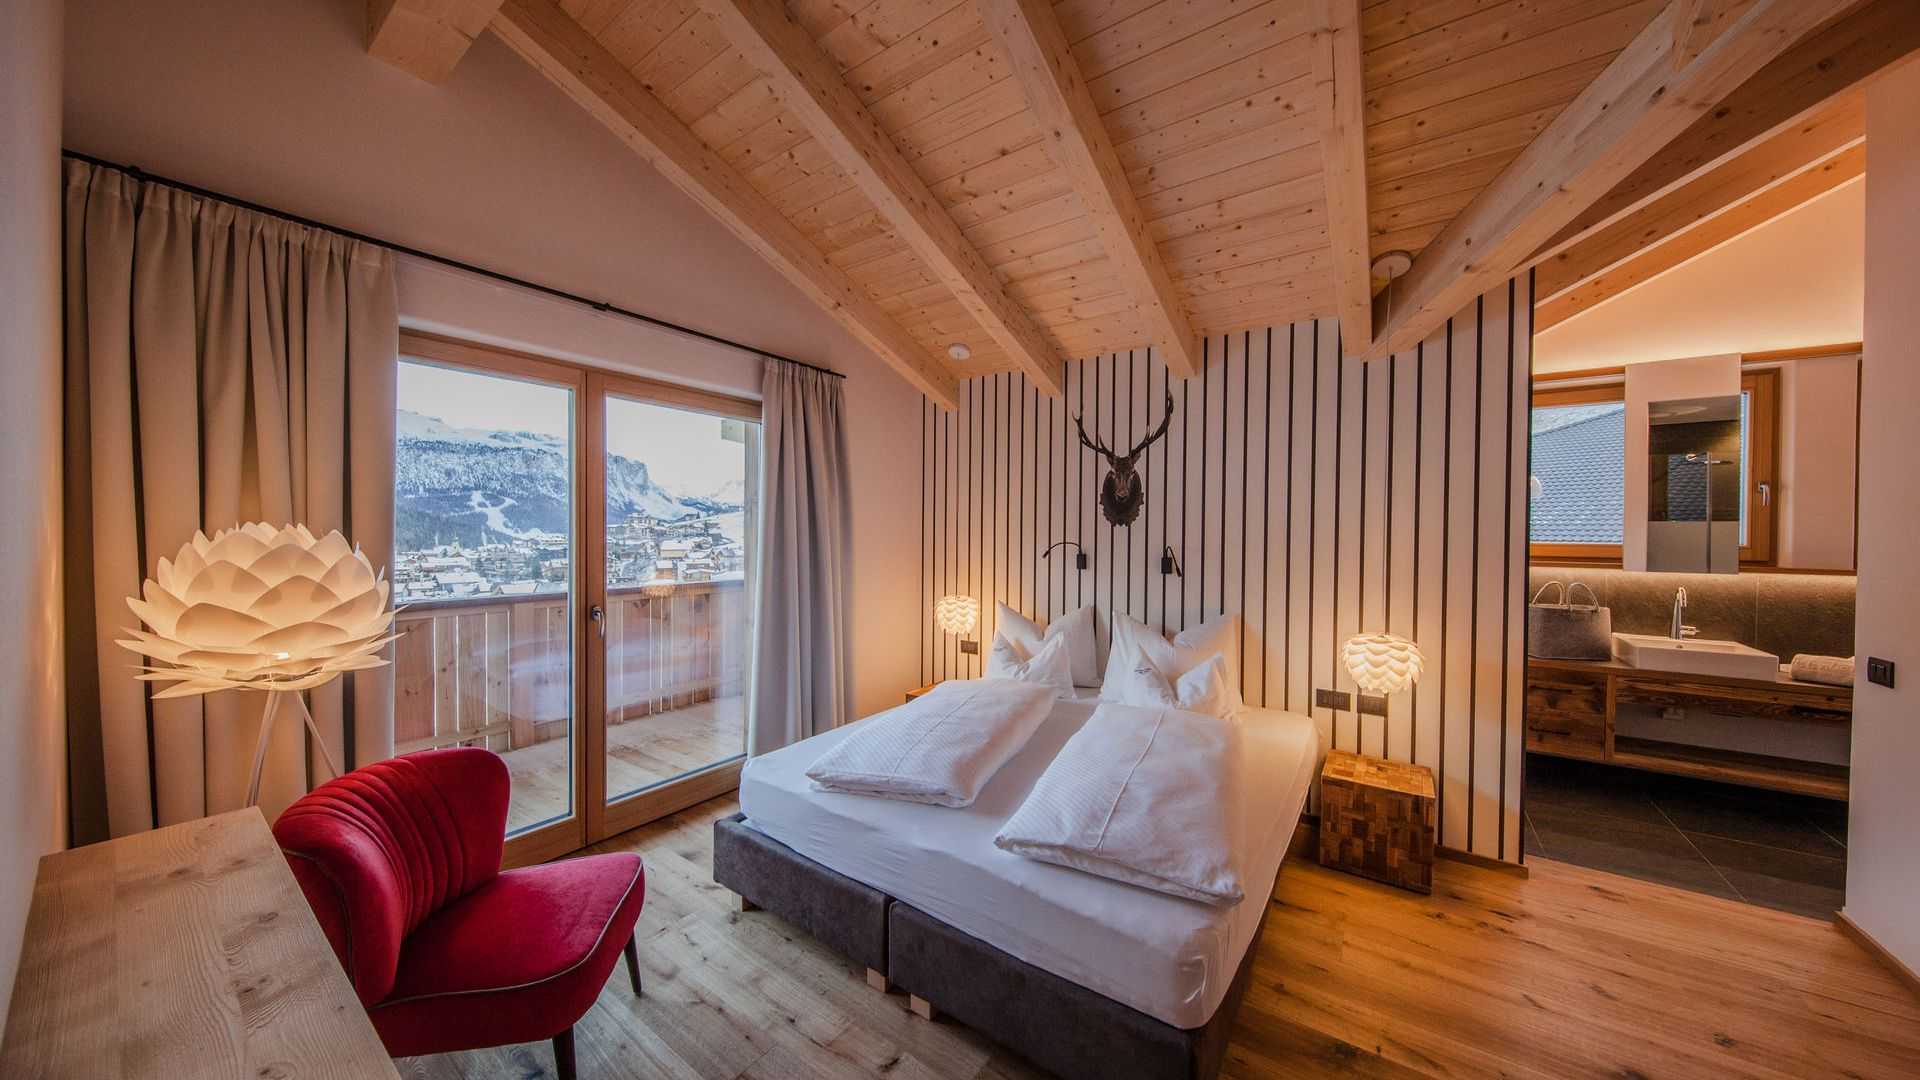 Image: Apartments San Cassiano